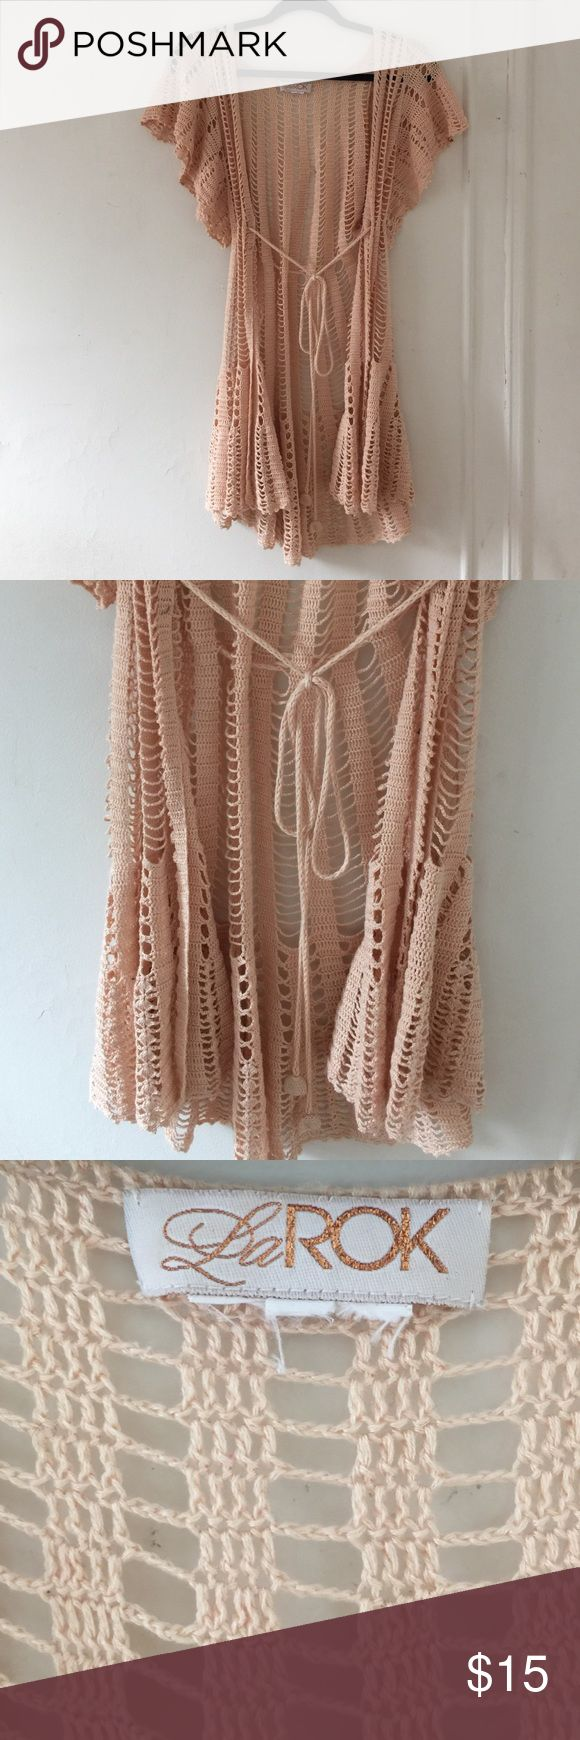 La Rok crochet coverup Beautiful creme crochet cover up from La Rok. Adorable over a tight black dress paired with some wedges. Barely worn and in great condition! ⭐️ La rok Tops Blouses